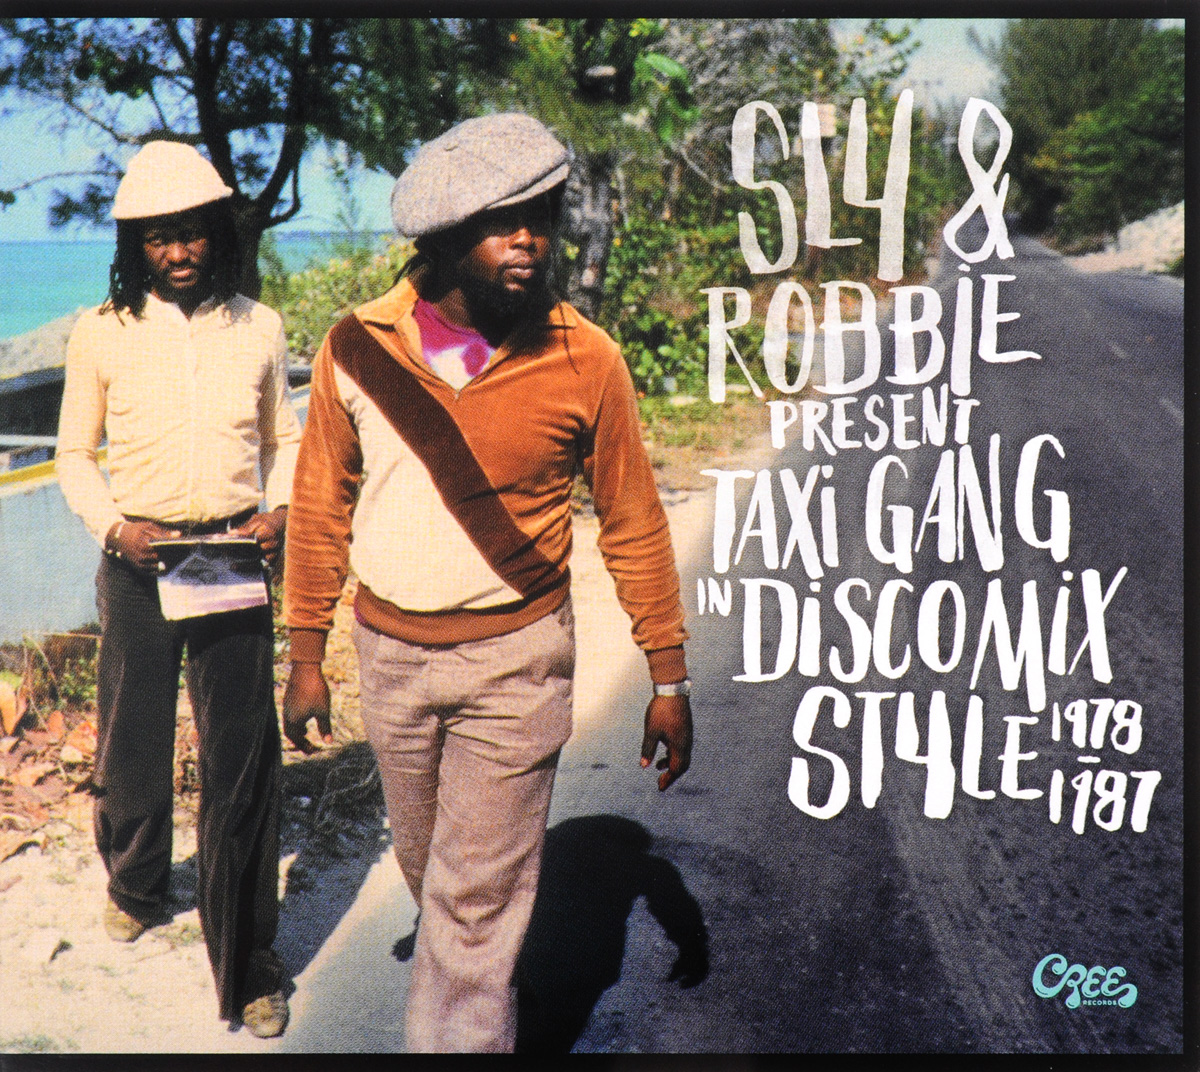 Sly & Robbie Present Taxi Gang In Disco Mix Style 1978-1987